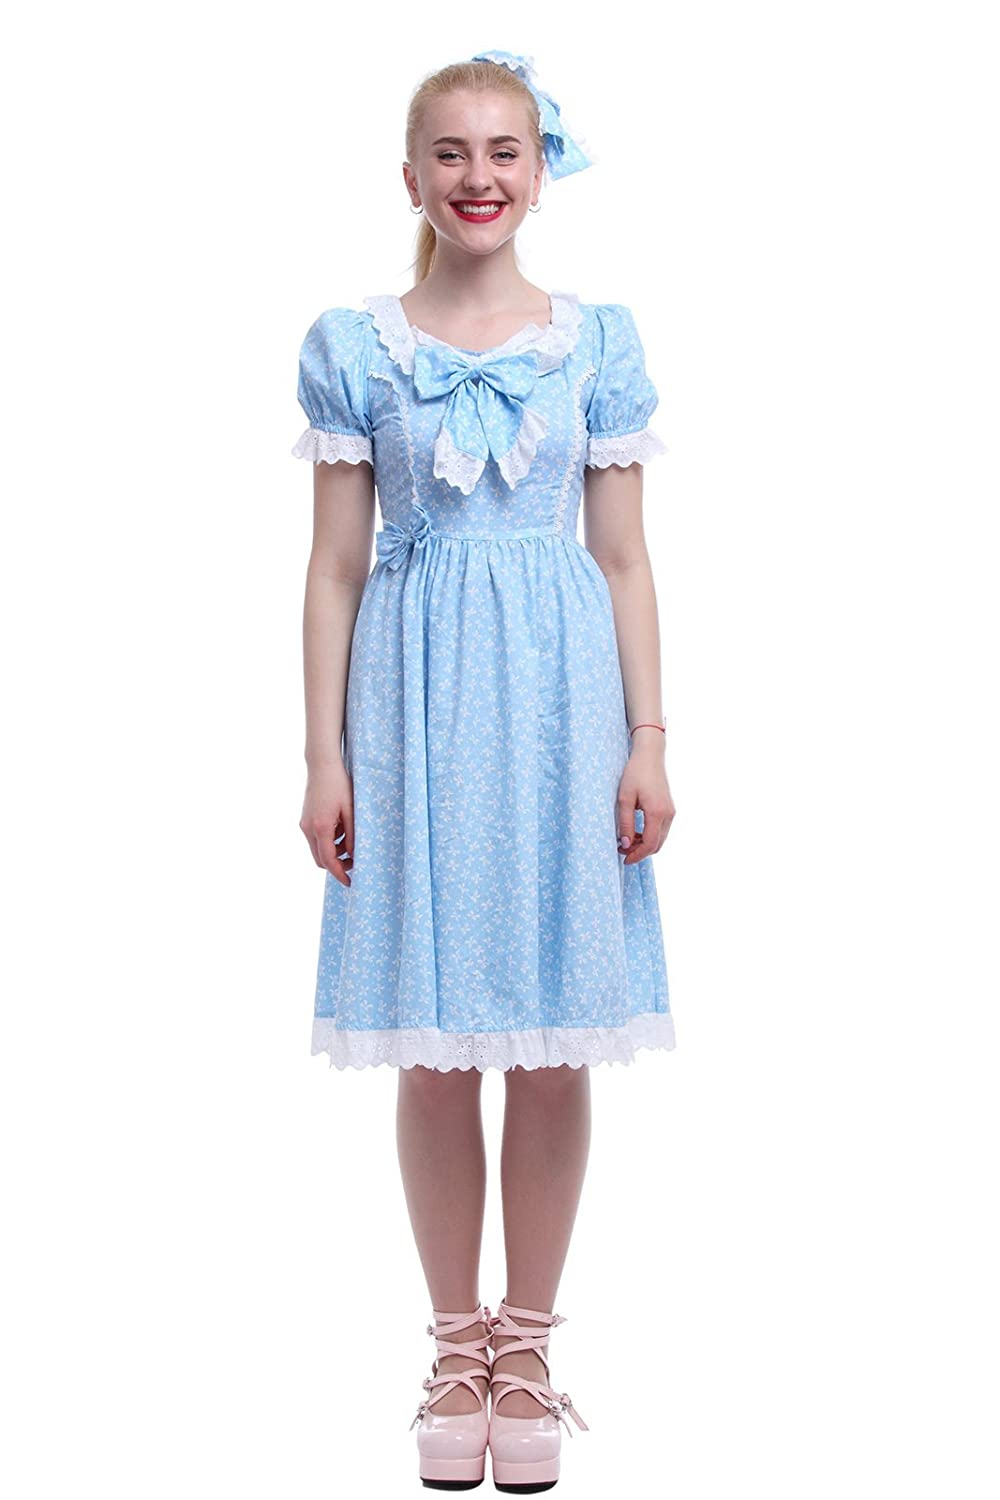 Victorian Kids Costumes & Shoes- Girls, Boys, Baby, Toddler Nuoqi Womens Sweet Lolita Dress Blue Cotton Bow Puff Skirts Costumes  AT vintagedancer.com